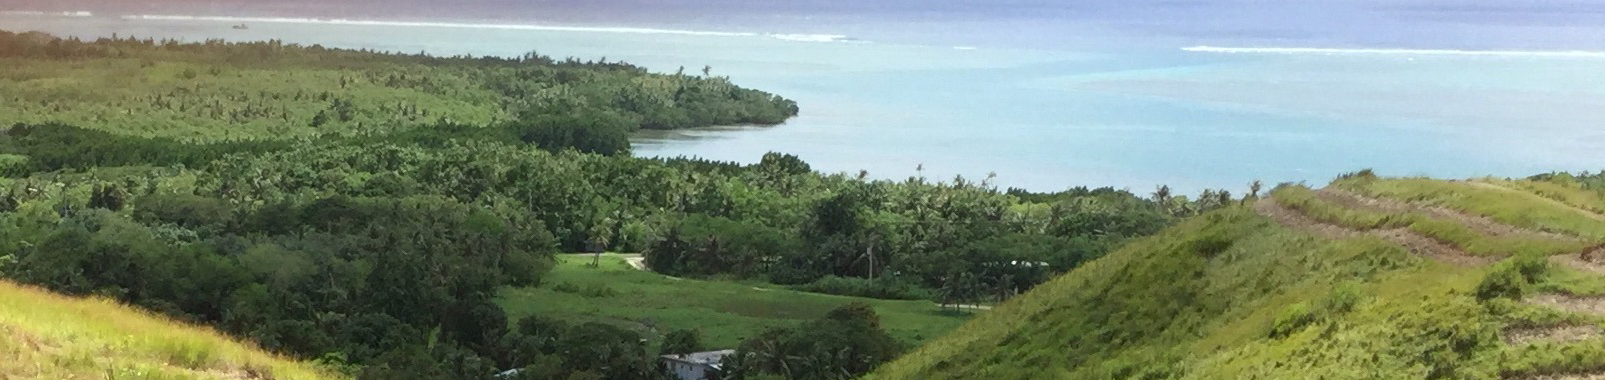 Panoramic of a demonstration site in Manell-Geus, Guam